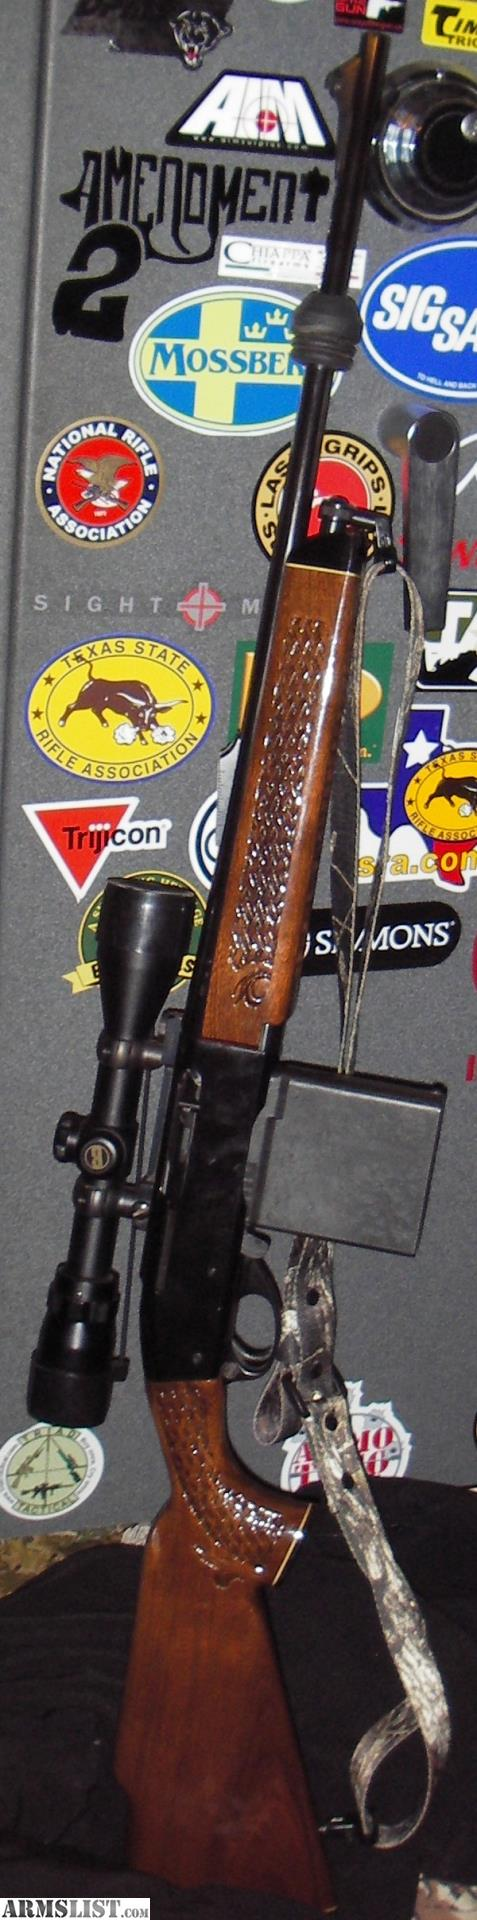 ARMSLIST - For Sale: Remington Woodsmaster 742 BDL Custom